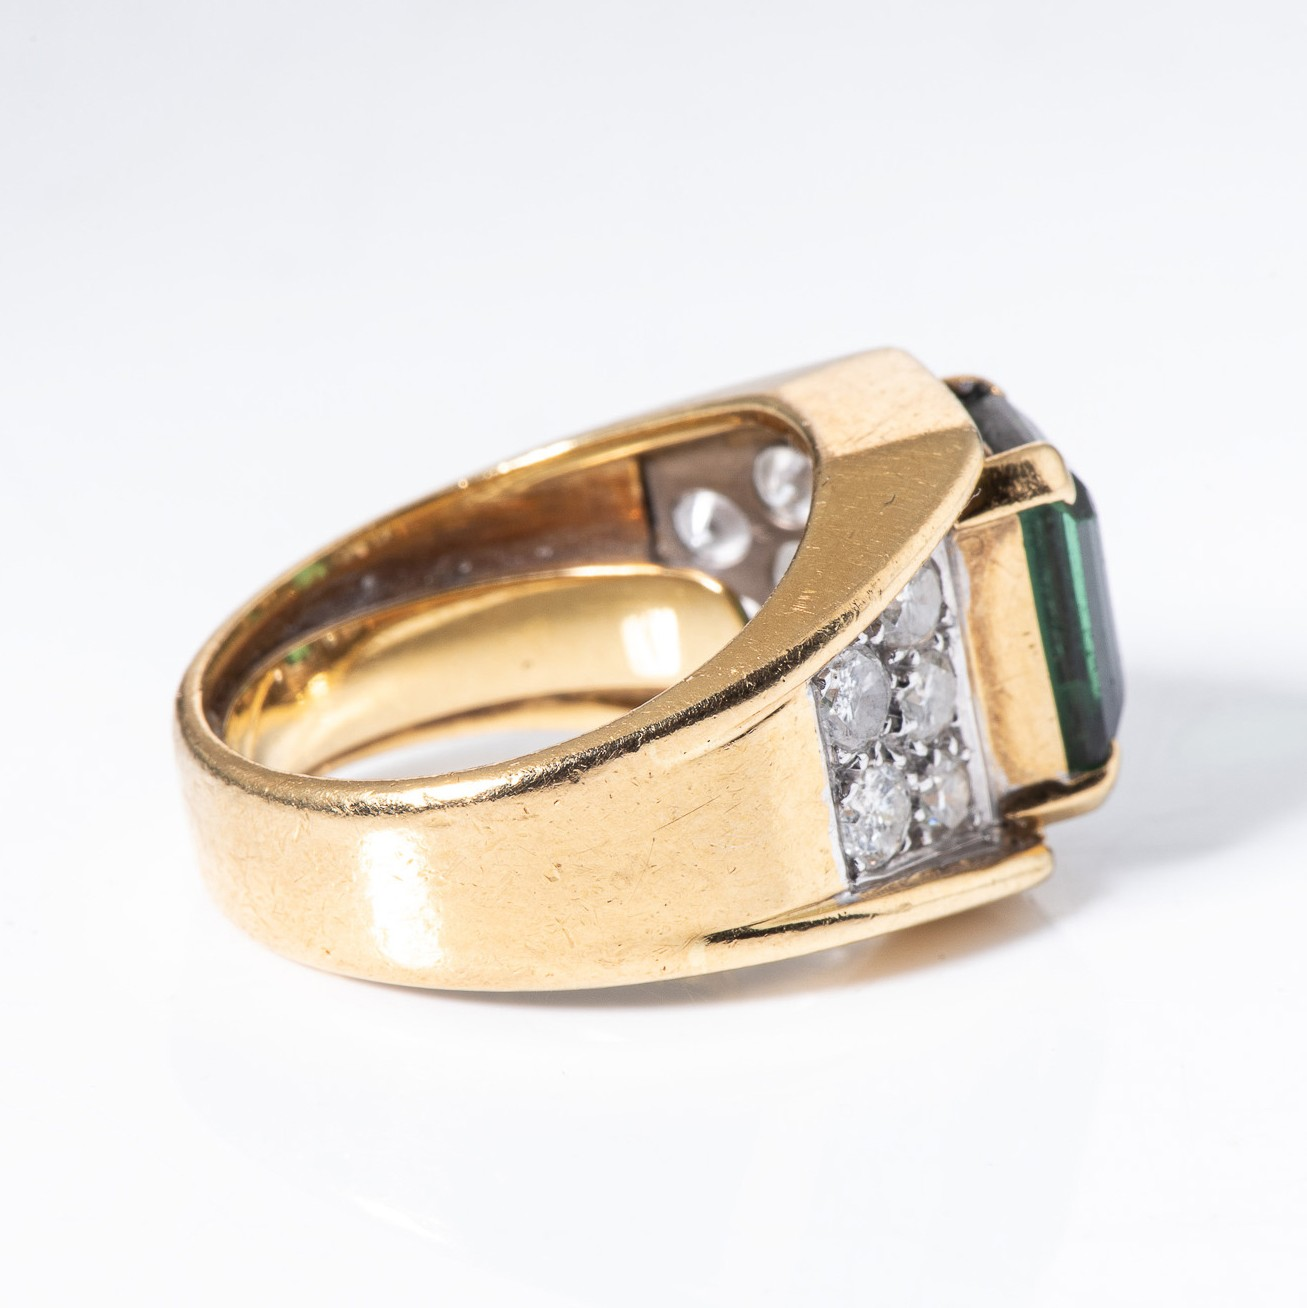 A GREEN TOURMALINE AND DIAMOND RING - Image 3 of 4